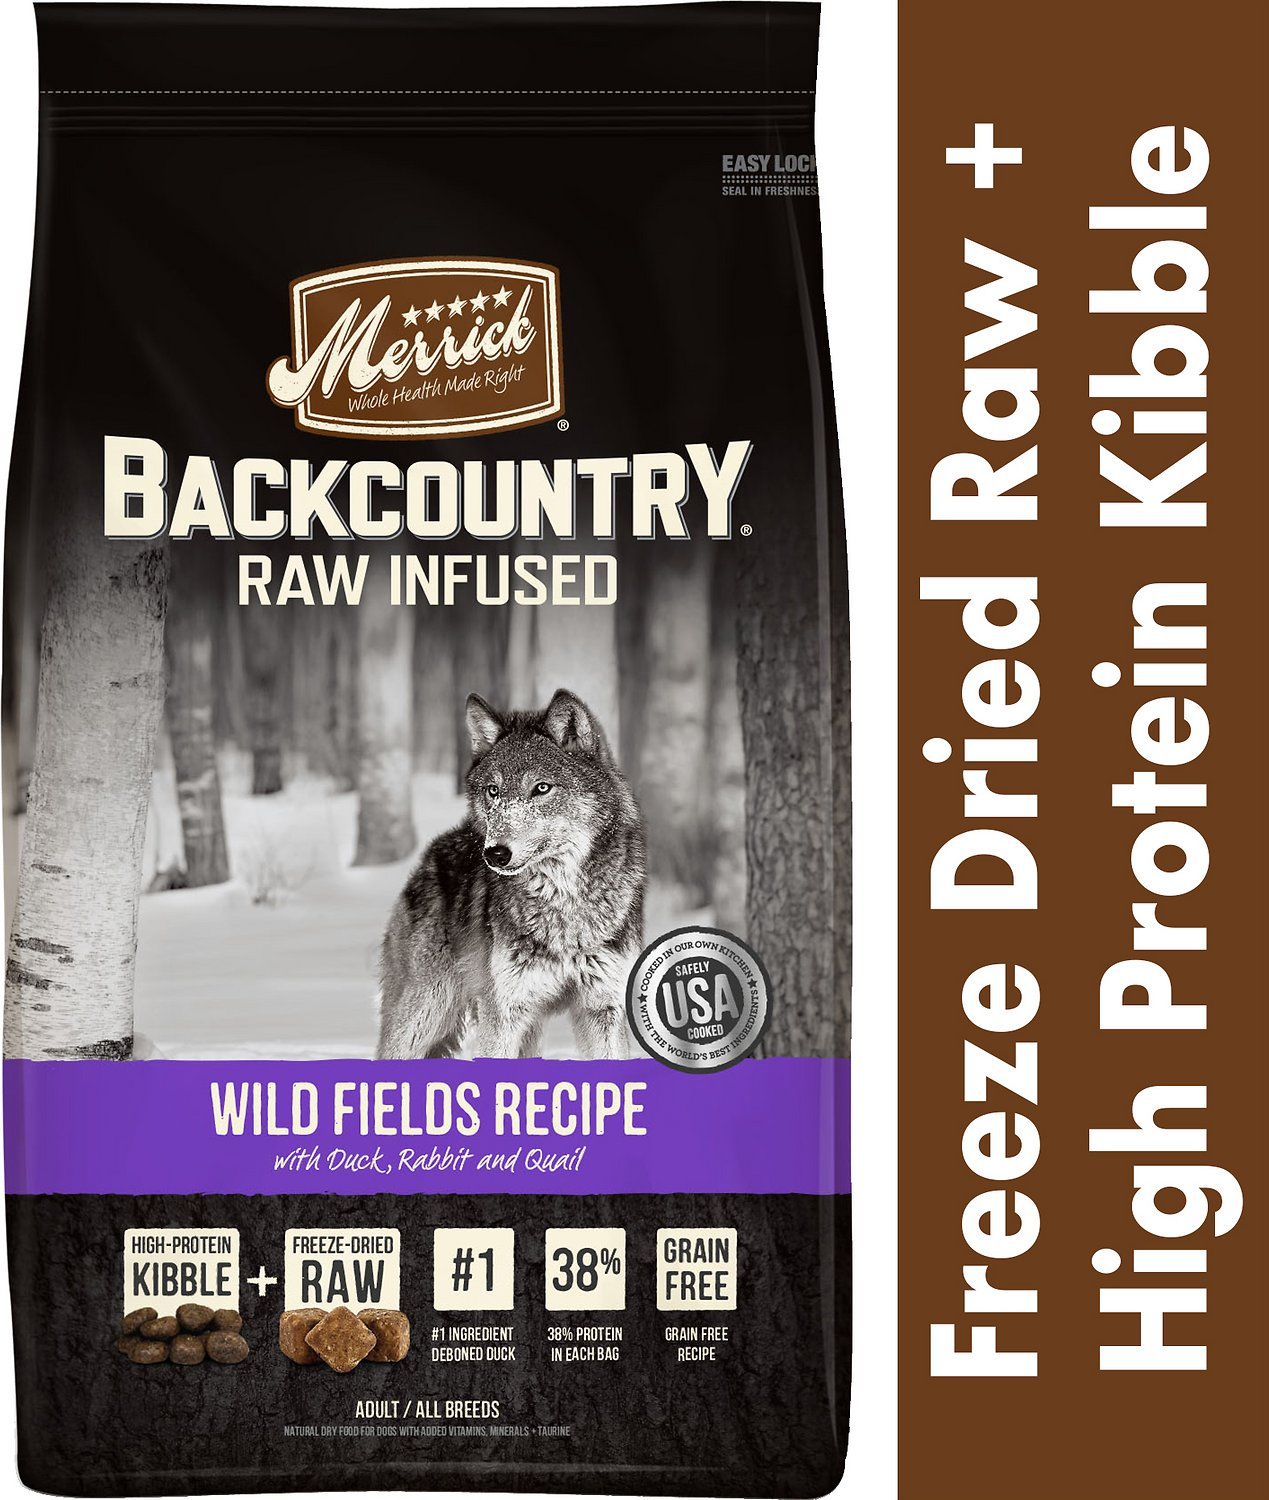 Merrick Backcountry Raw Infused Wild Fields Recipe Duck, Rabbit, & Quail Grain-Free Dry Dog Food, 12-lb